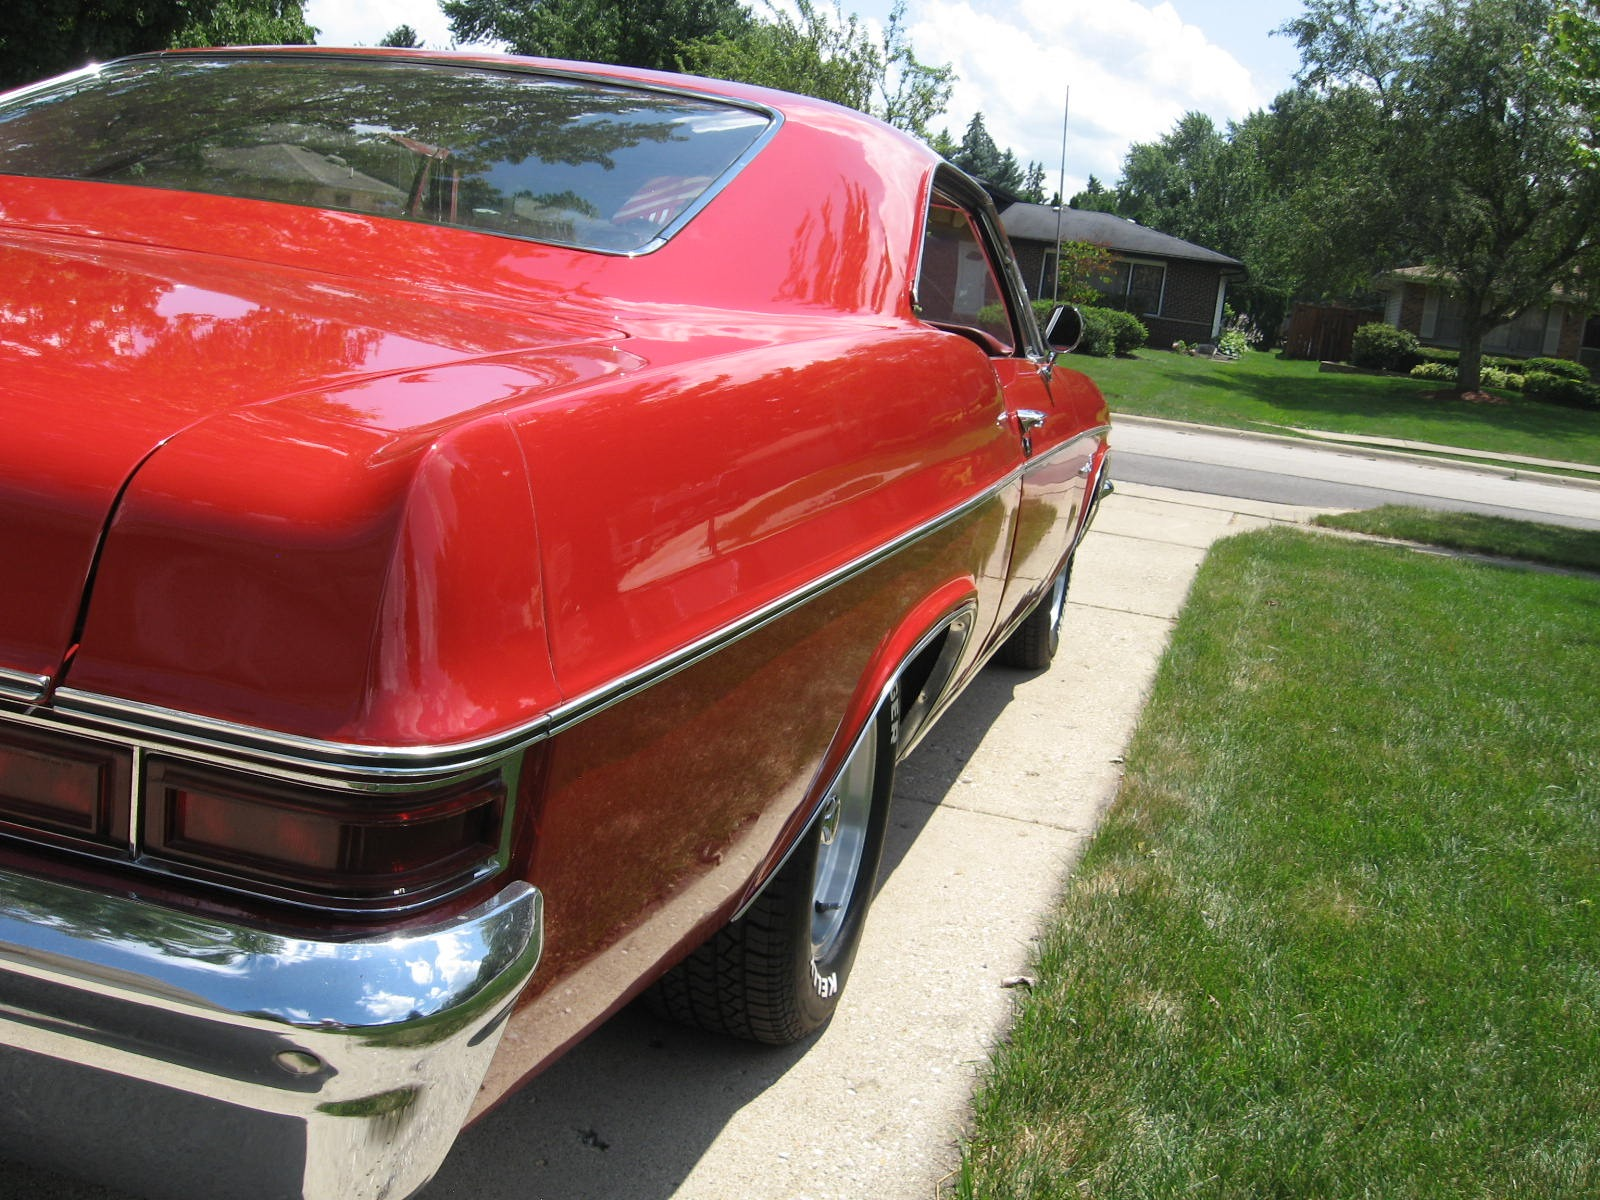 Used 1966 Chevrolet Impala -RESPECTFUL AND RELIABLE CLASSIC MUSCLE- | Mundelein, IL